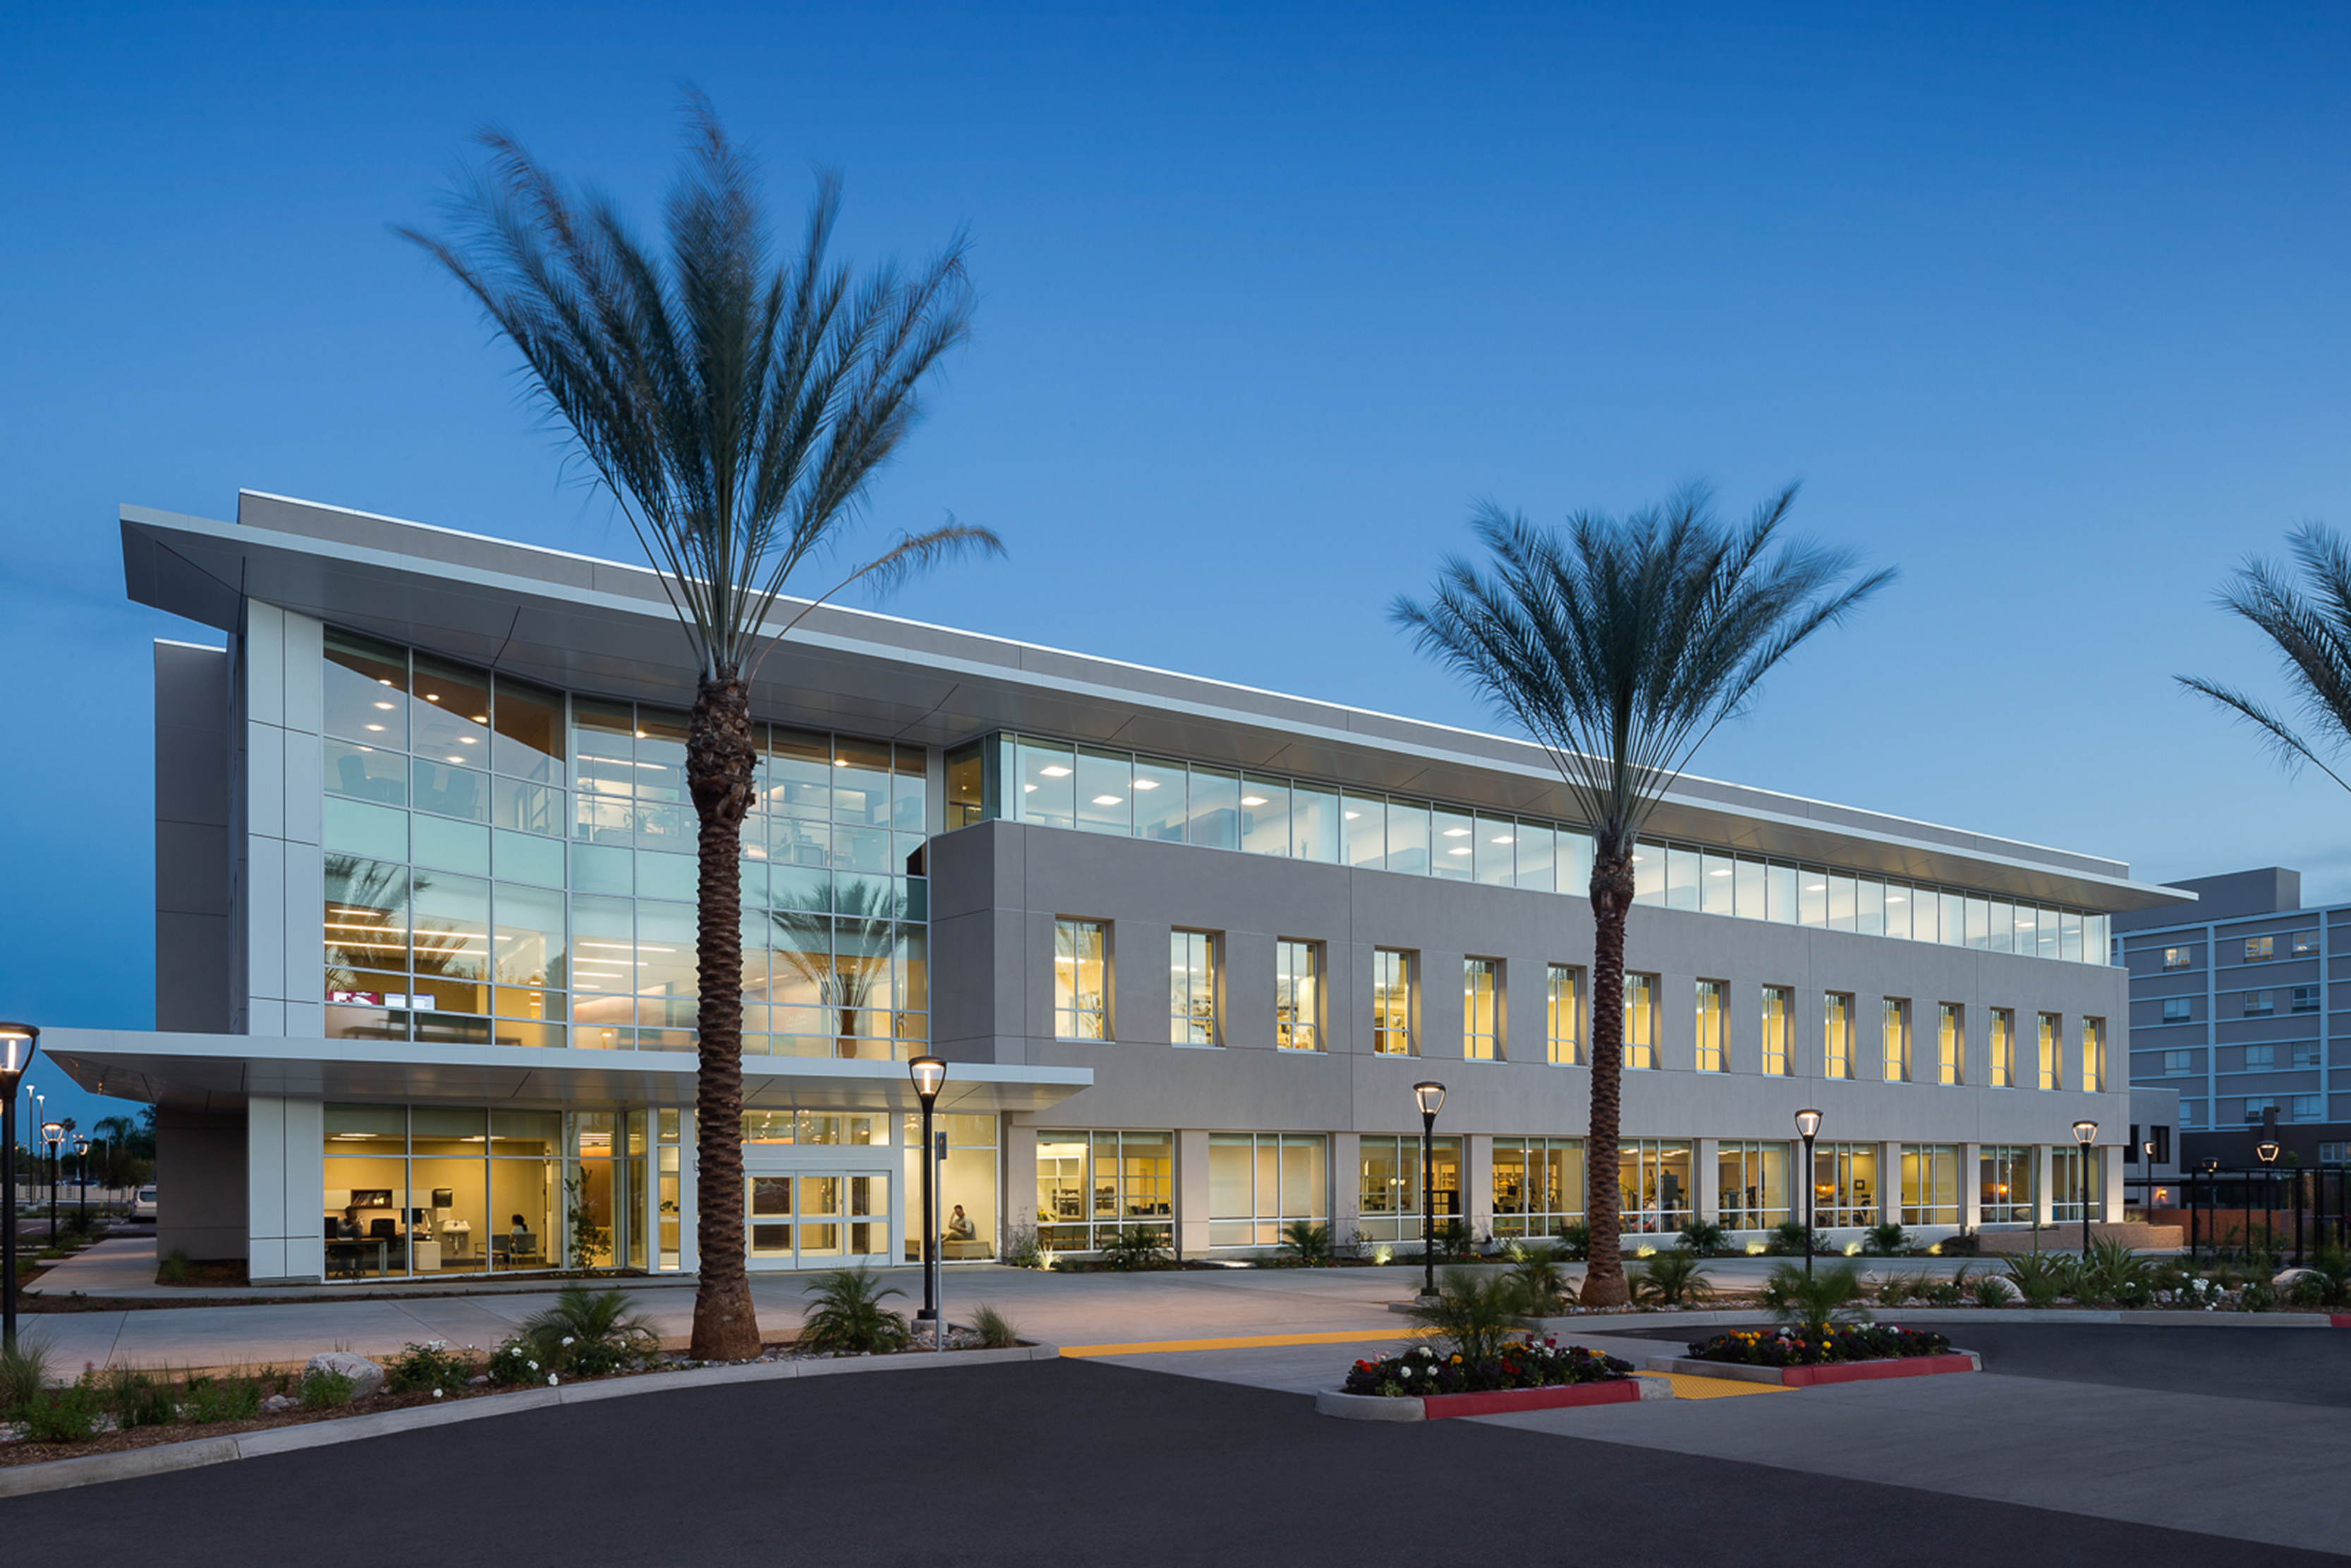 Pomona Valley Hospital Medical Center Robert And Beverly Lewis